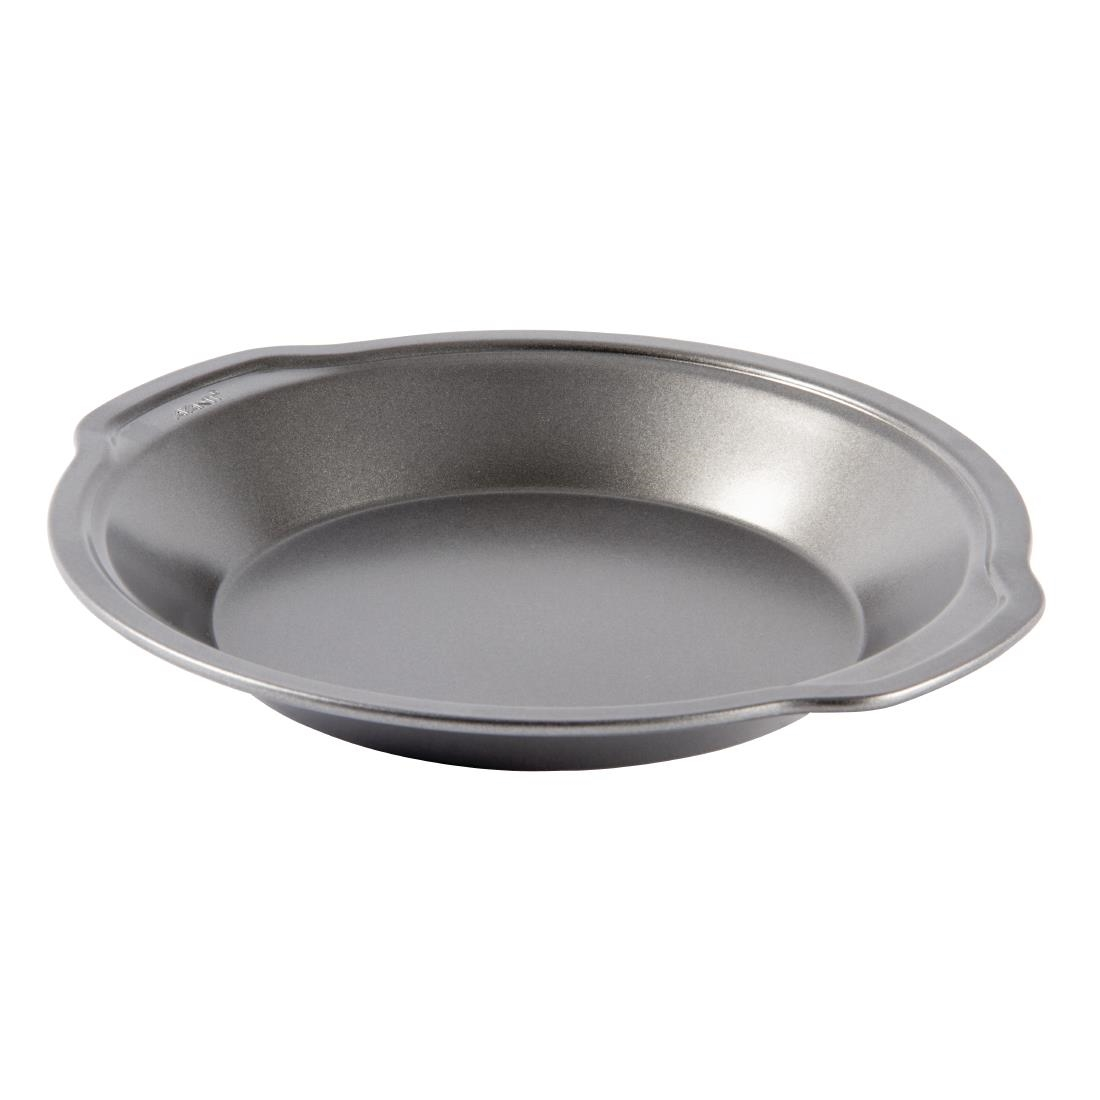 Image of Avanti Non Stick Round Pie Dish